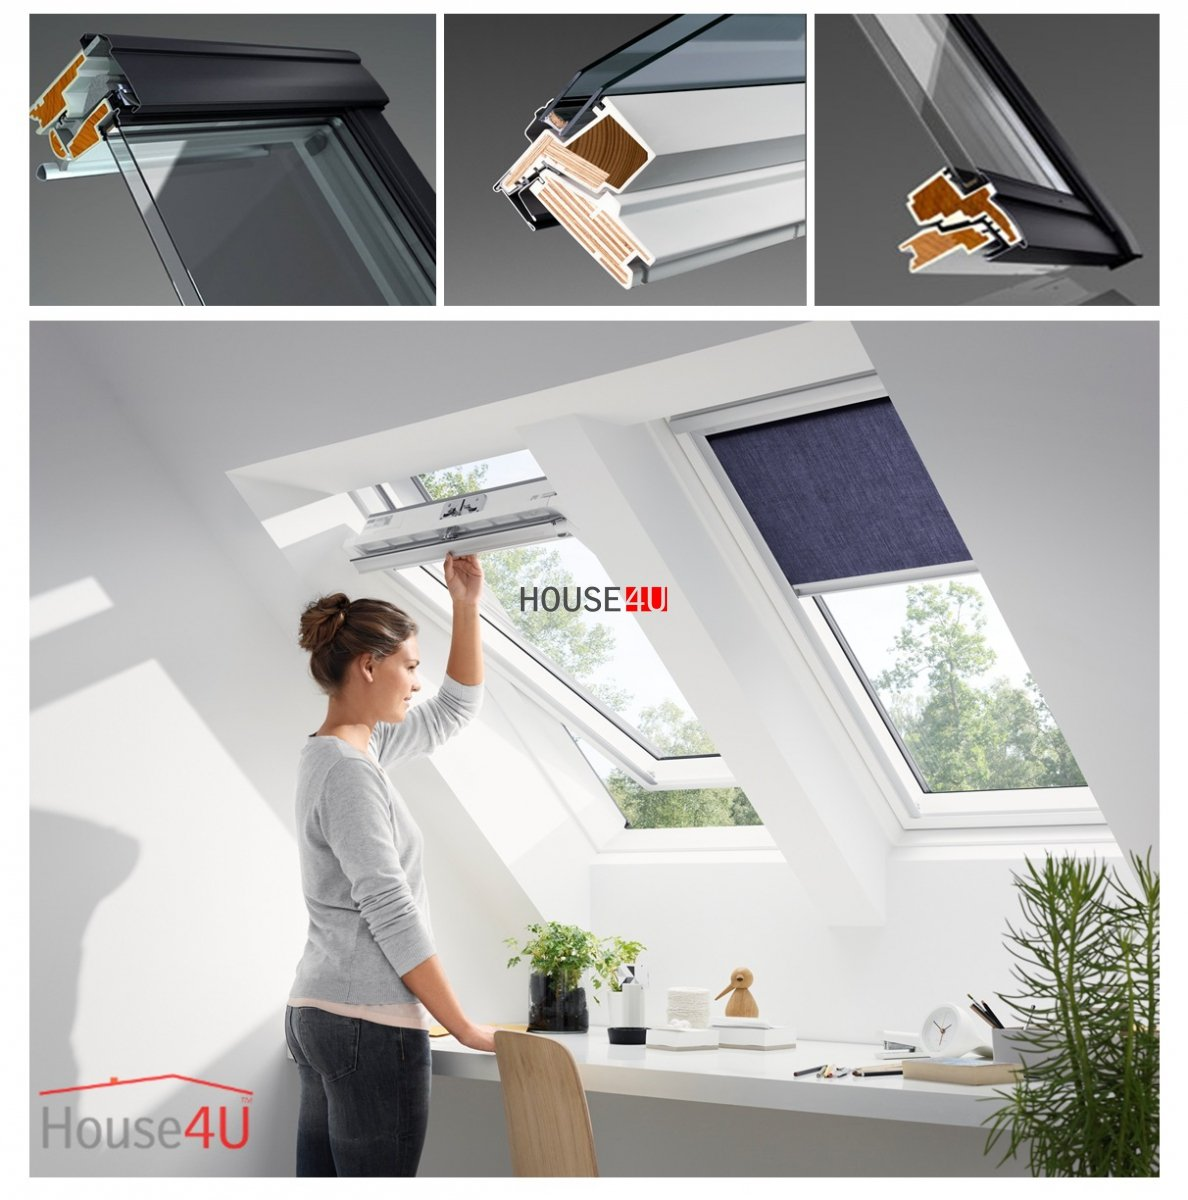 velux dachfenster ggu 0068 kunststoff schwingfenster 3 fach 3 fach verglasung uw 1 1 energie. Black Bedroom Furniture Sets. Home Design Ideas